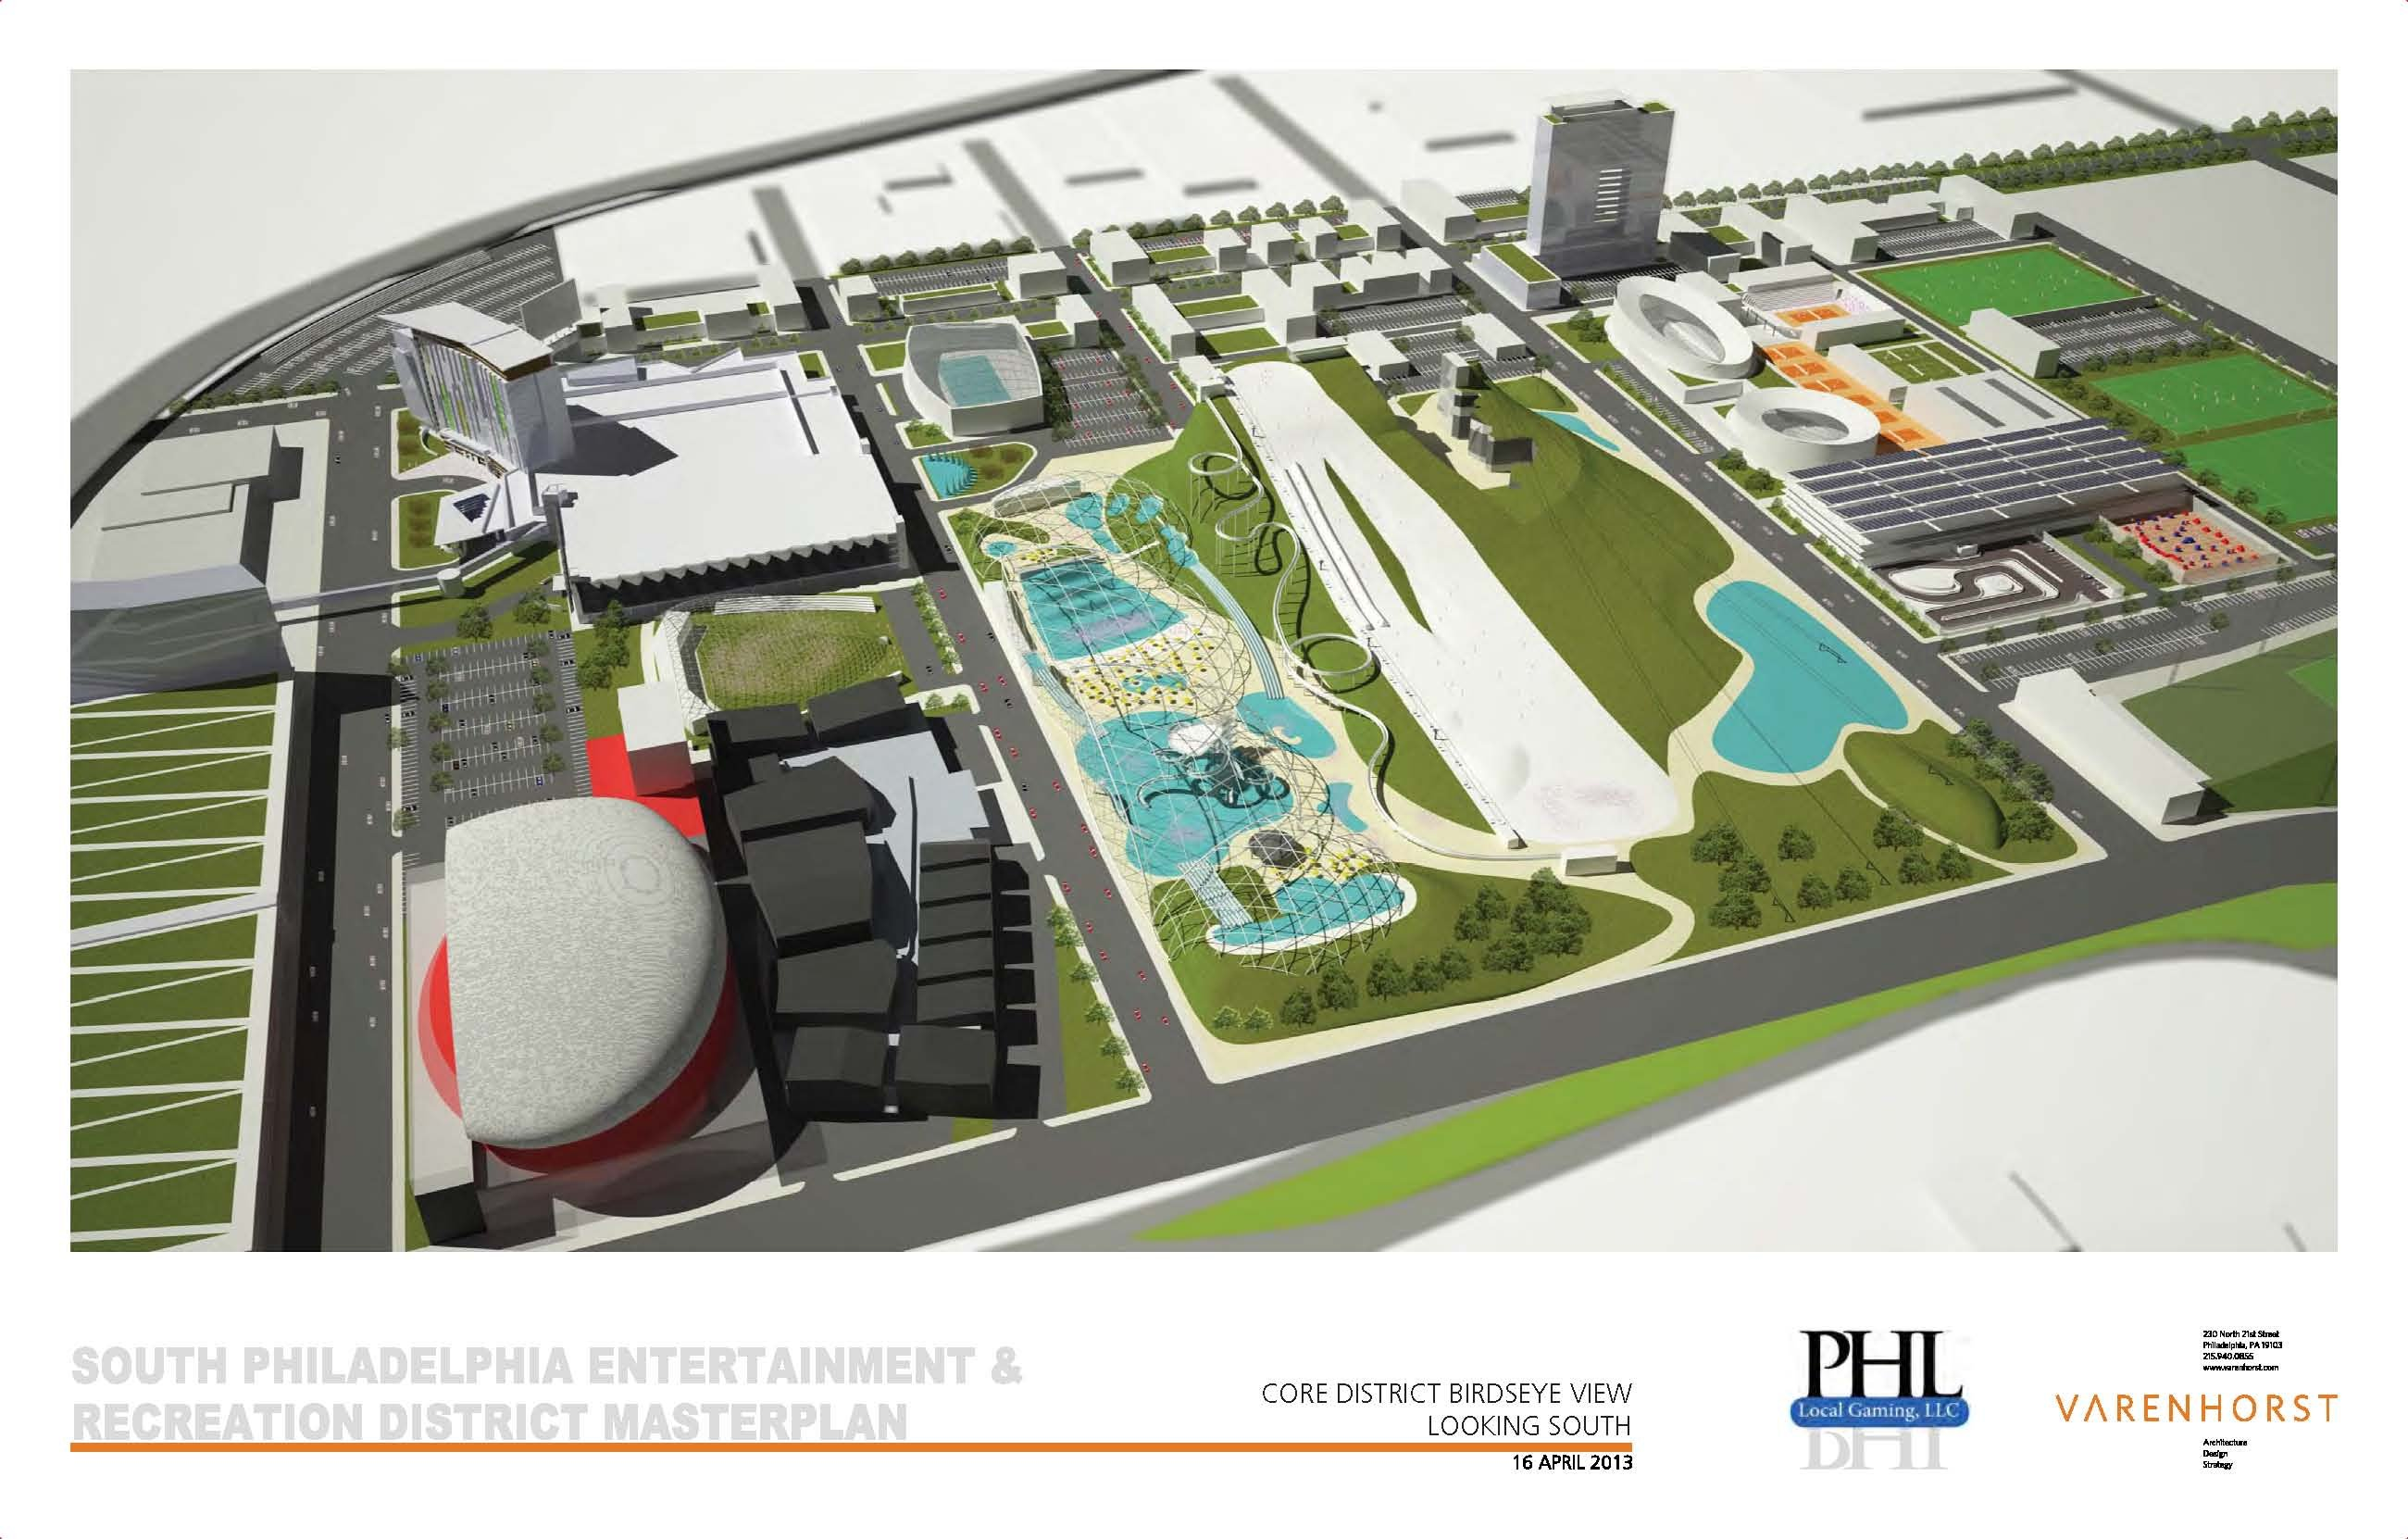 PHL Local Gaming's proposed entertainment and recreation district